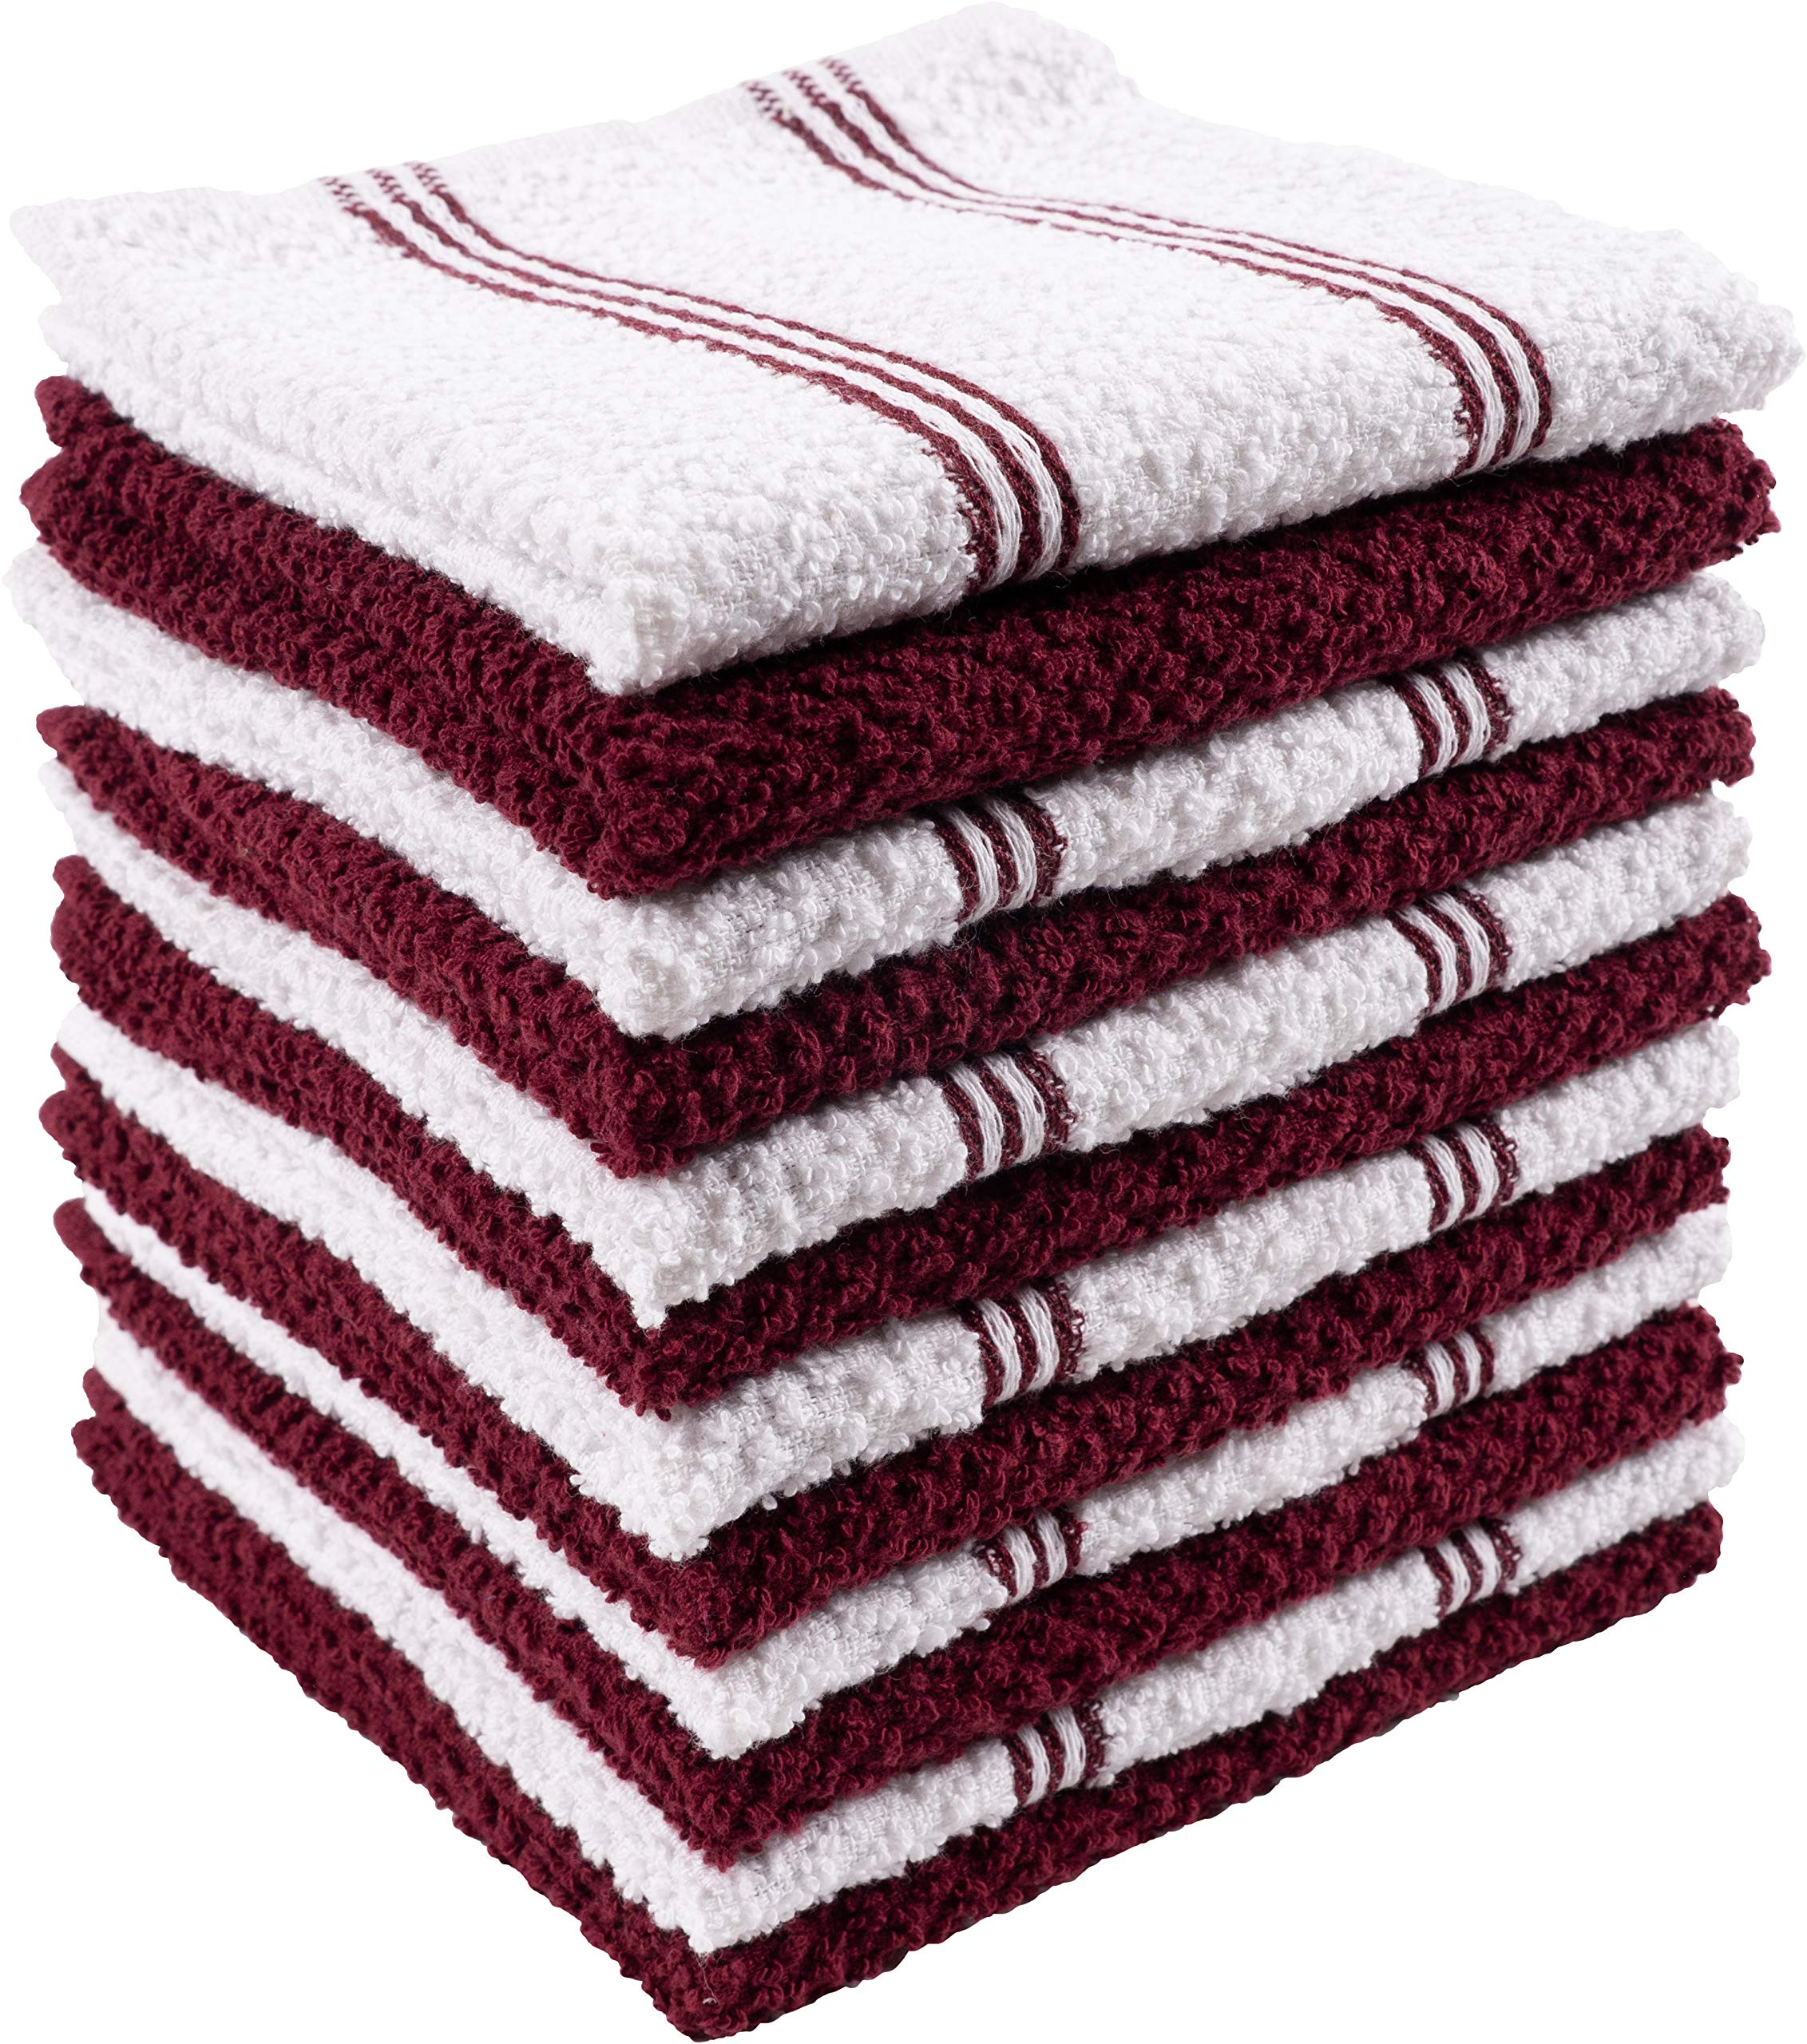 KAF Home Pantry Piedmont Dish Cloths (Set of 12, 12x12 inches), 100% Cotton, Ultra Absorbent Terry Towels - Wine Red